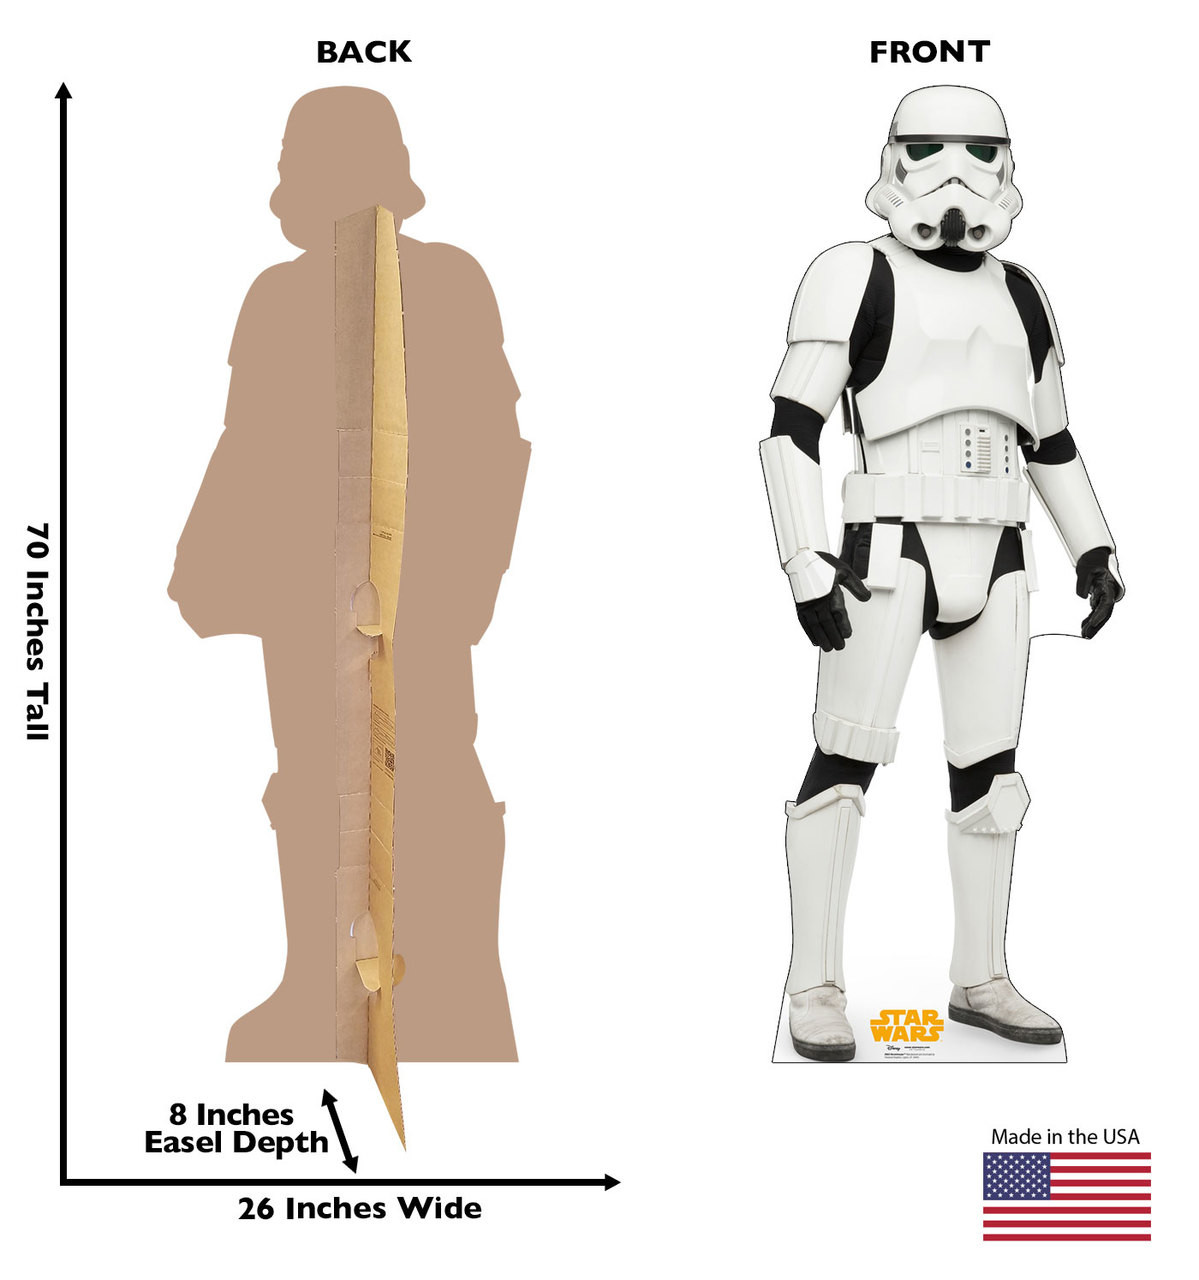 Stormtrooper™ Life-size cardboard standee back and front with dimensions.